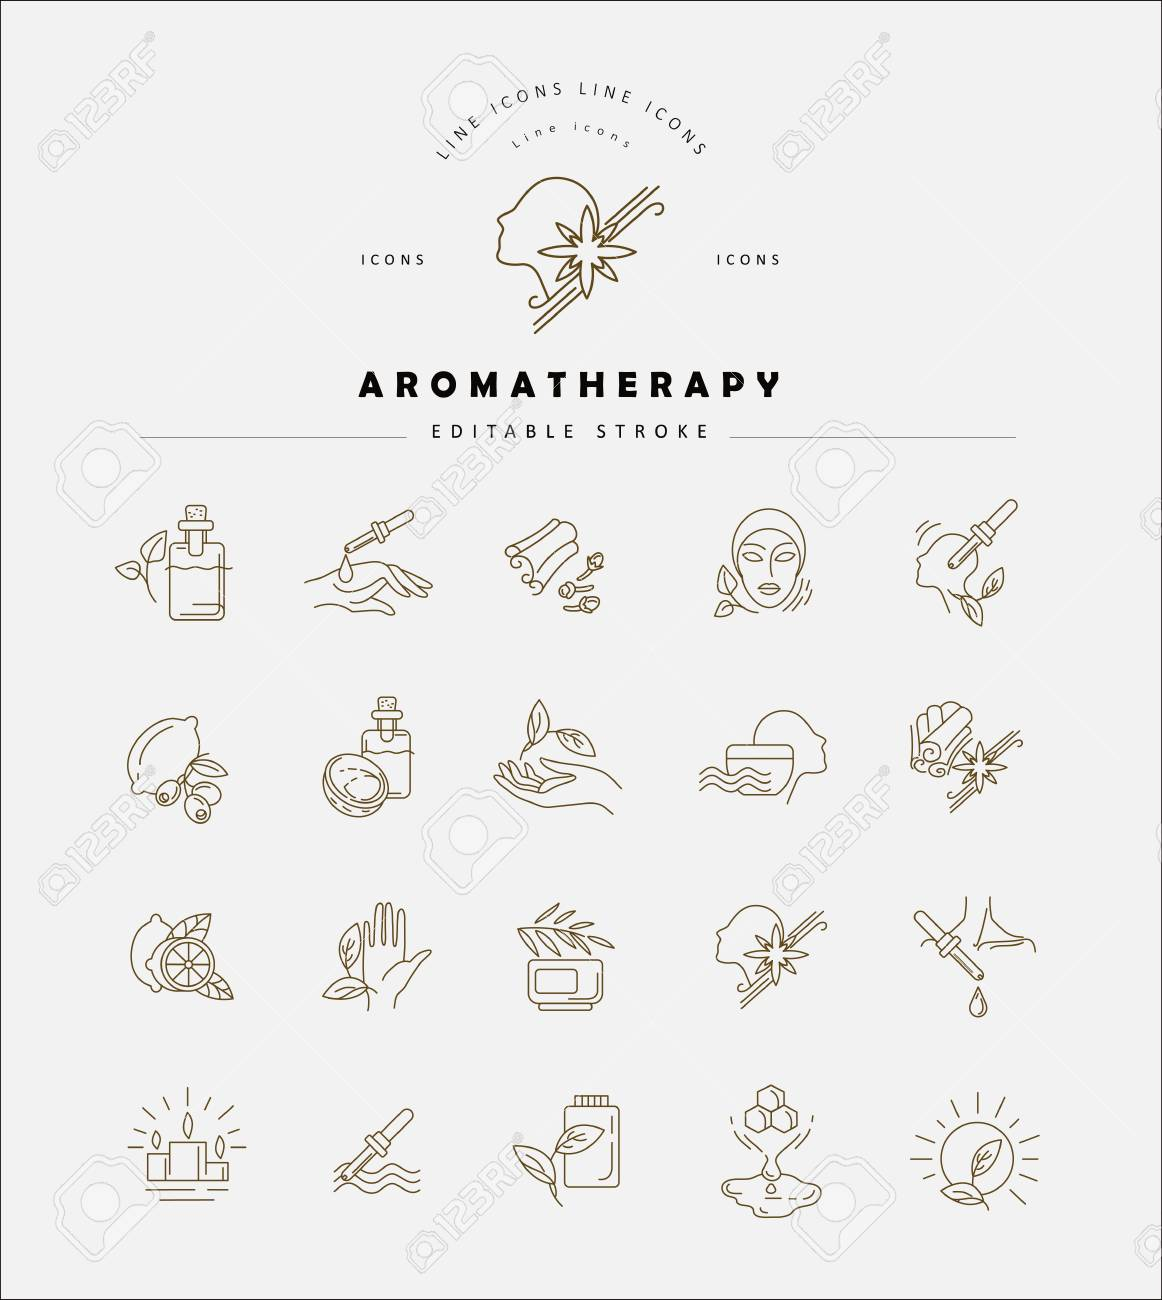 Vector Icon And Logo For Aromatherapy Editable Outline Stroke Royalty Free Cliparts Vectors And Stock Illustration Image 113854837